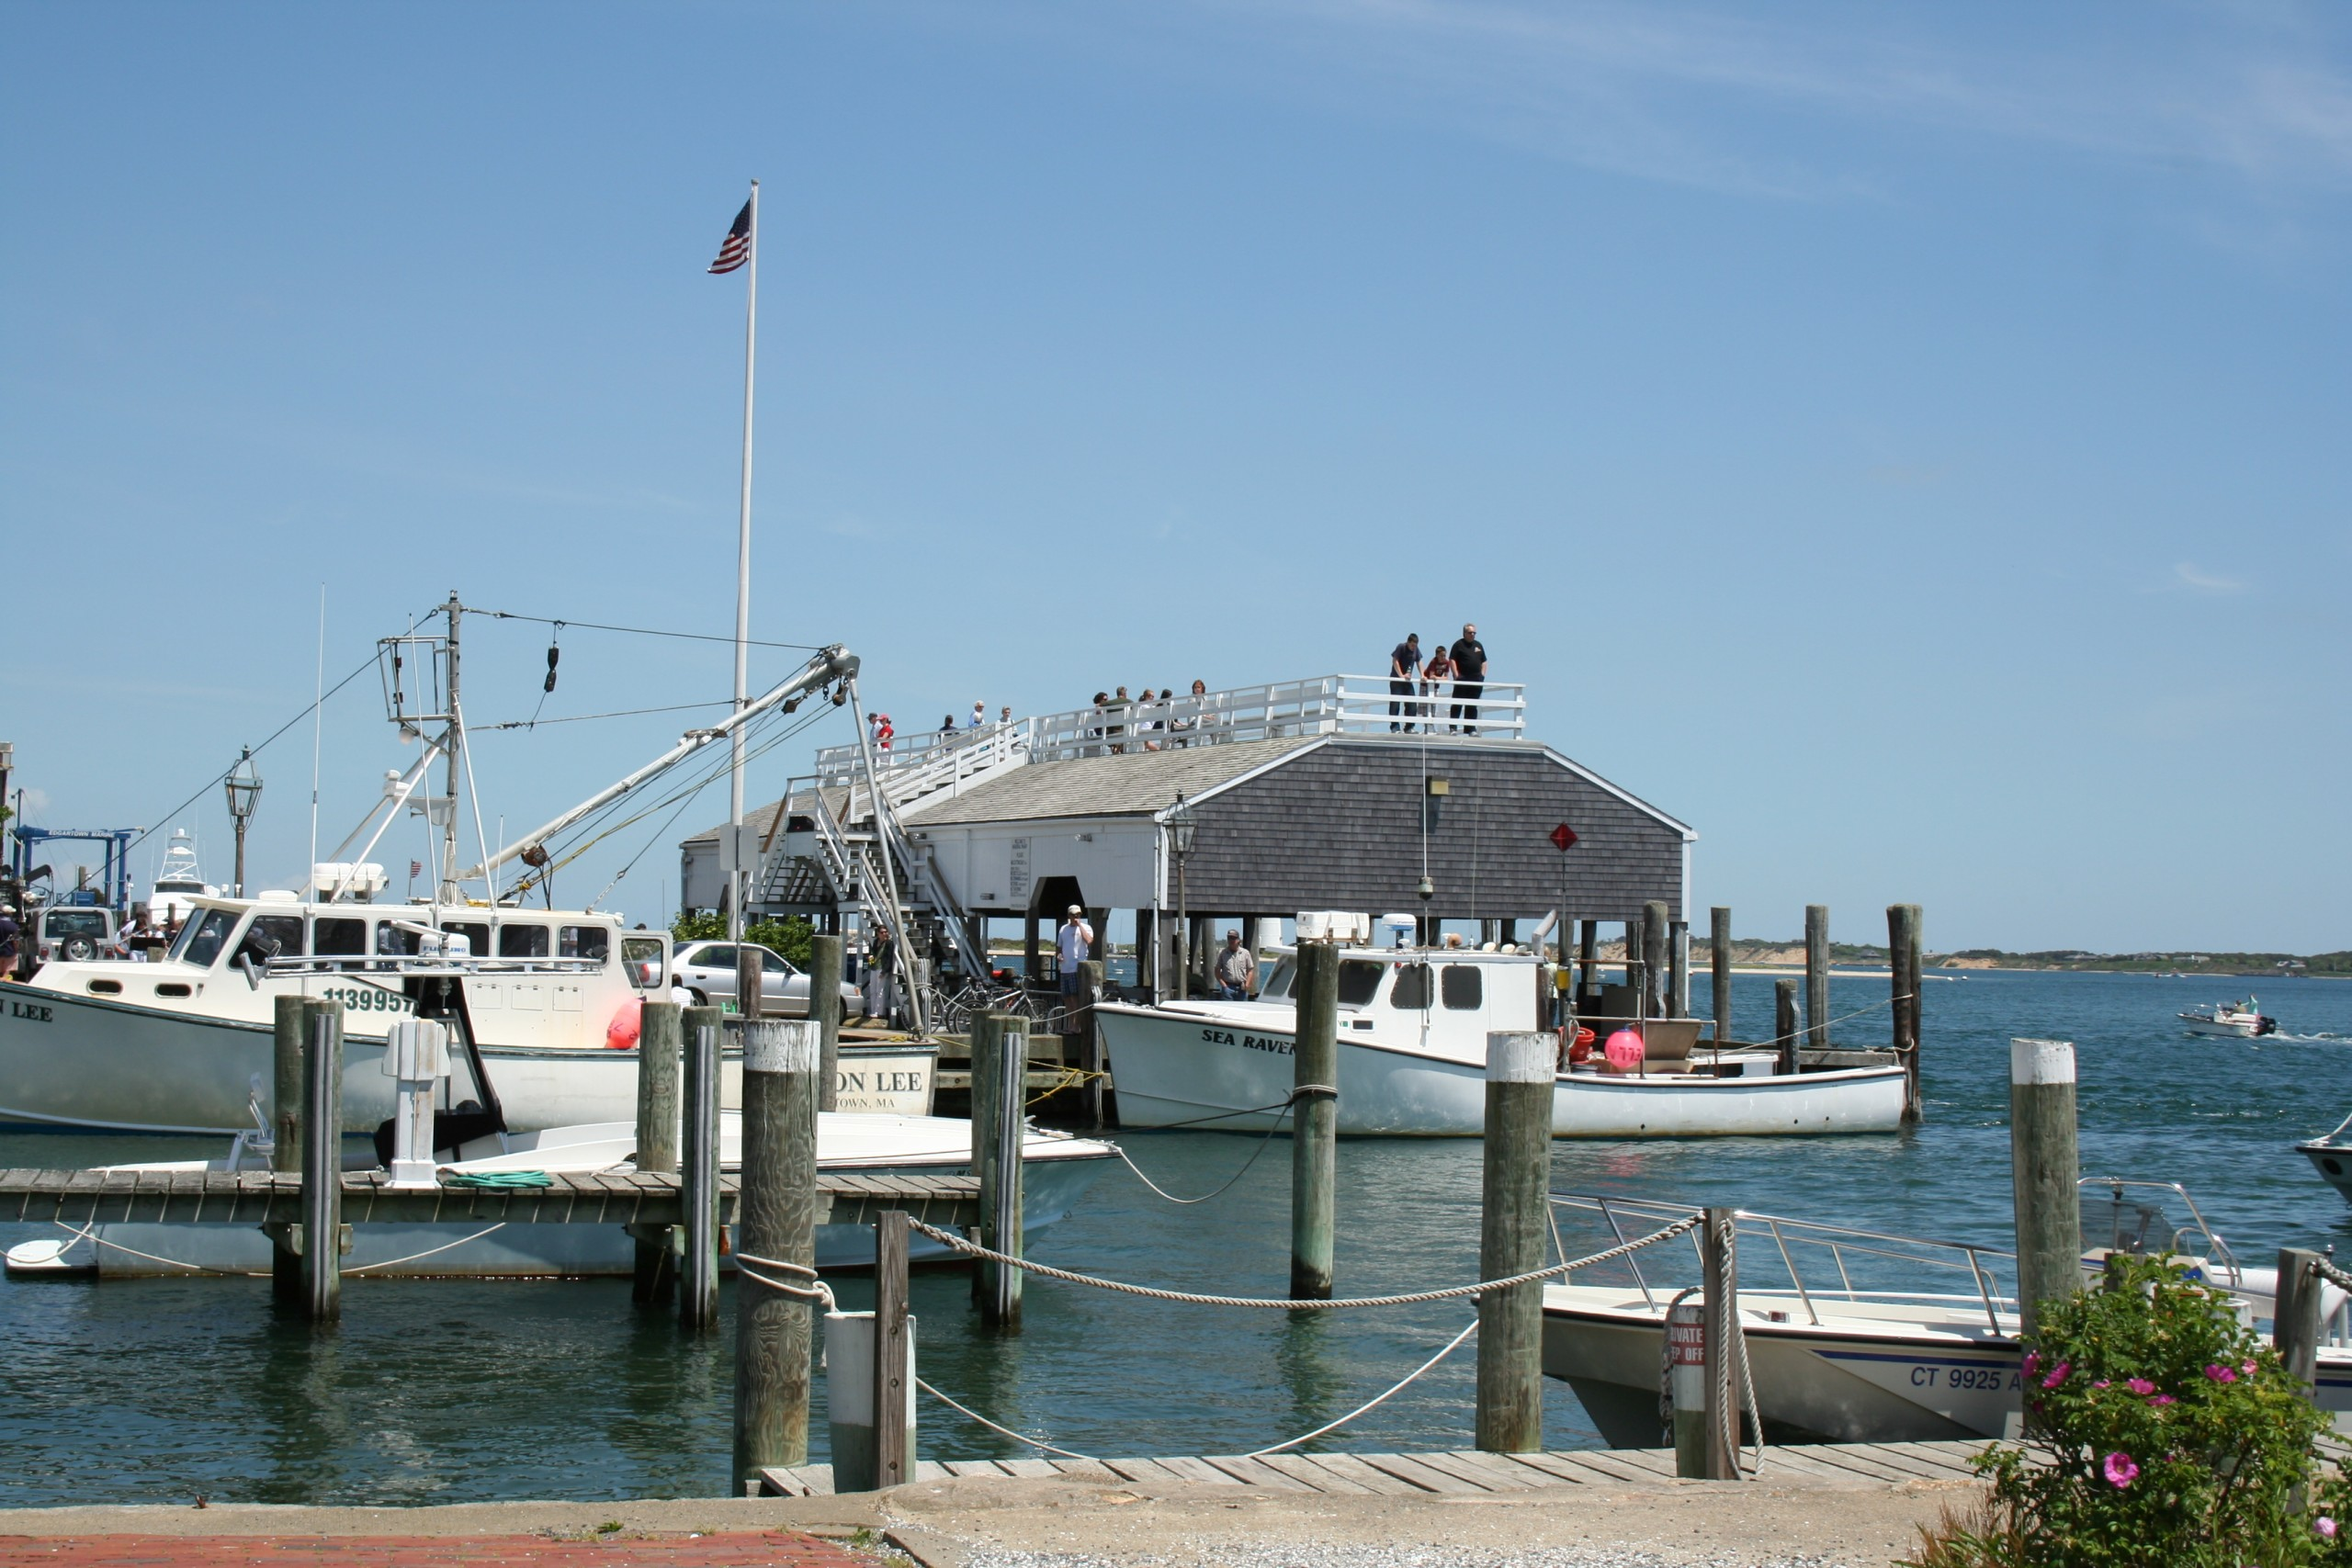 edgartown harbor marthas vineyard ma